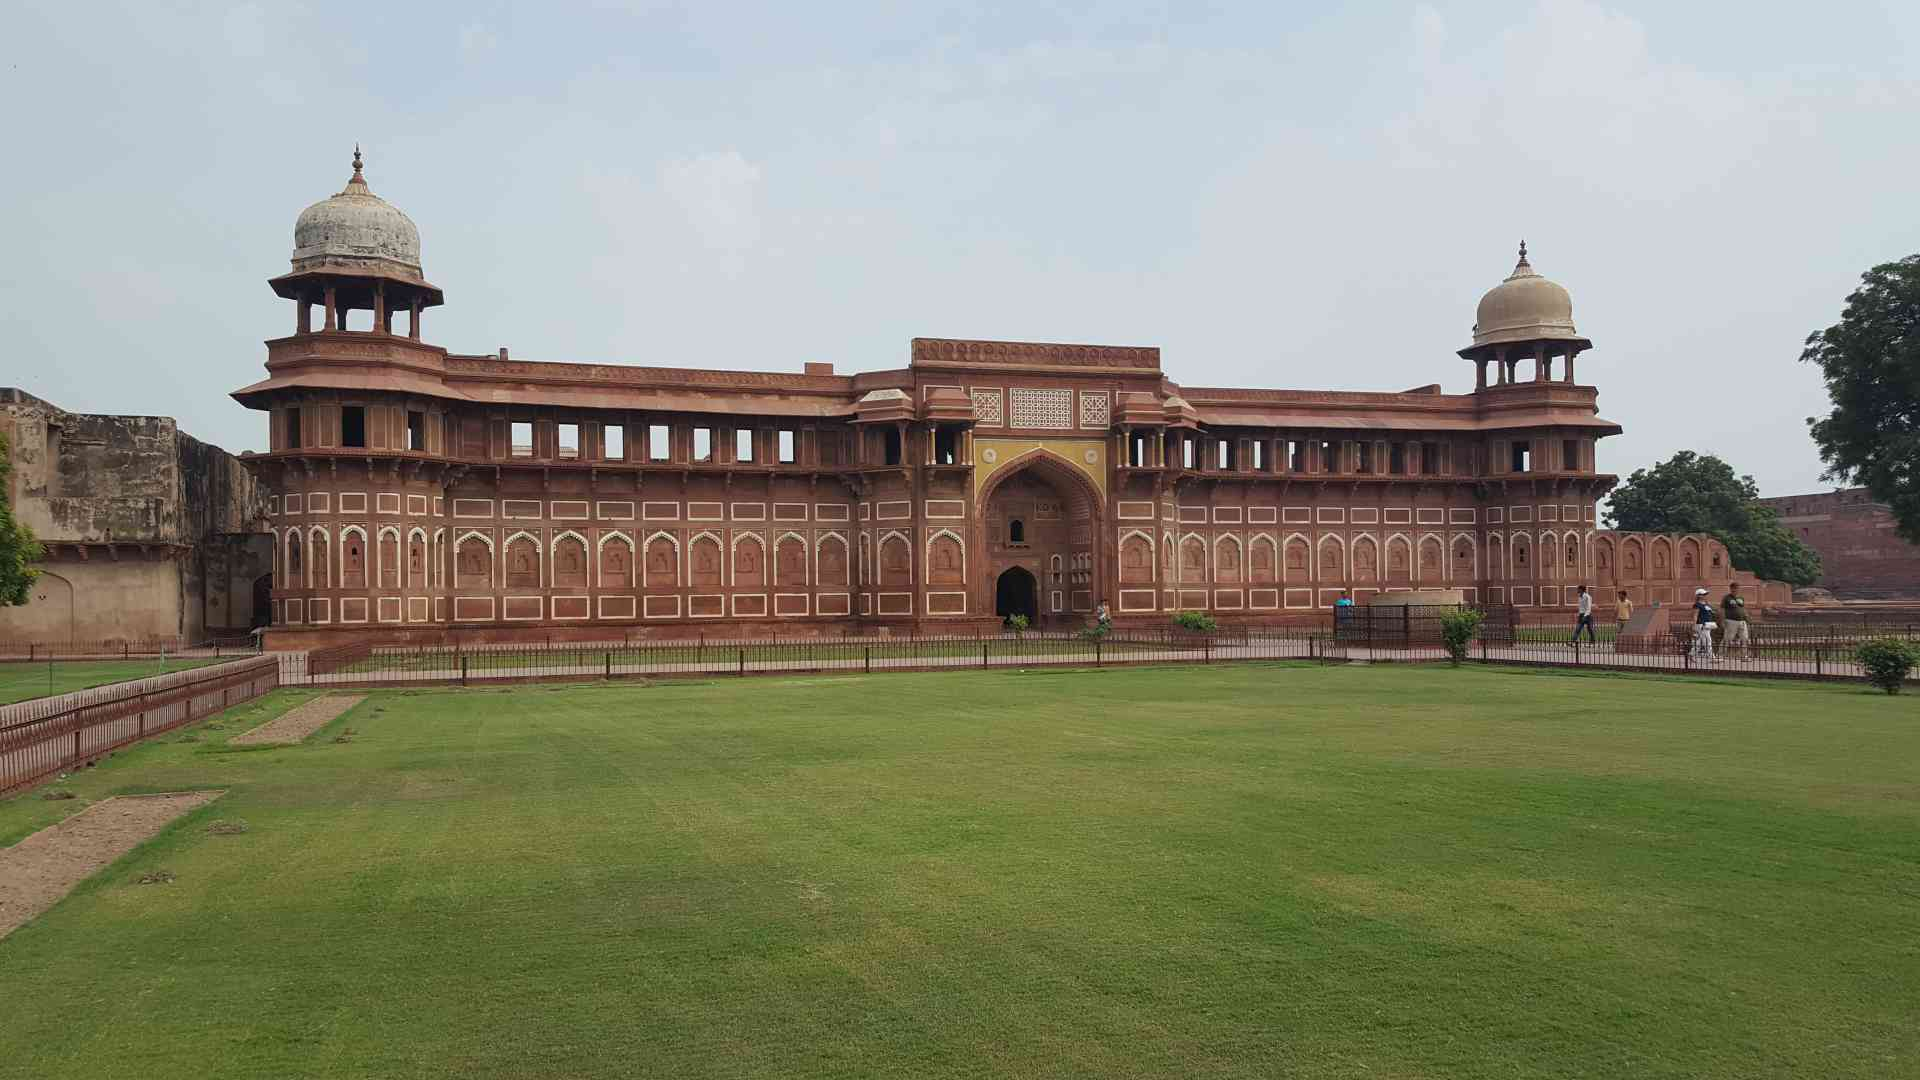 Agra Fort, India by Dennis Bunnik